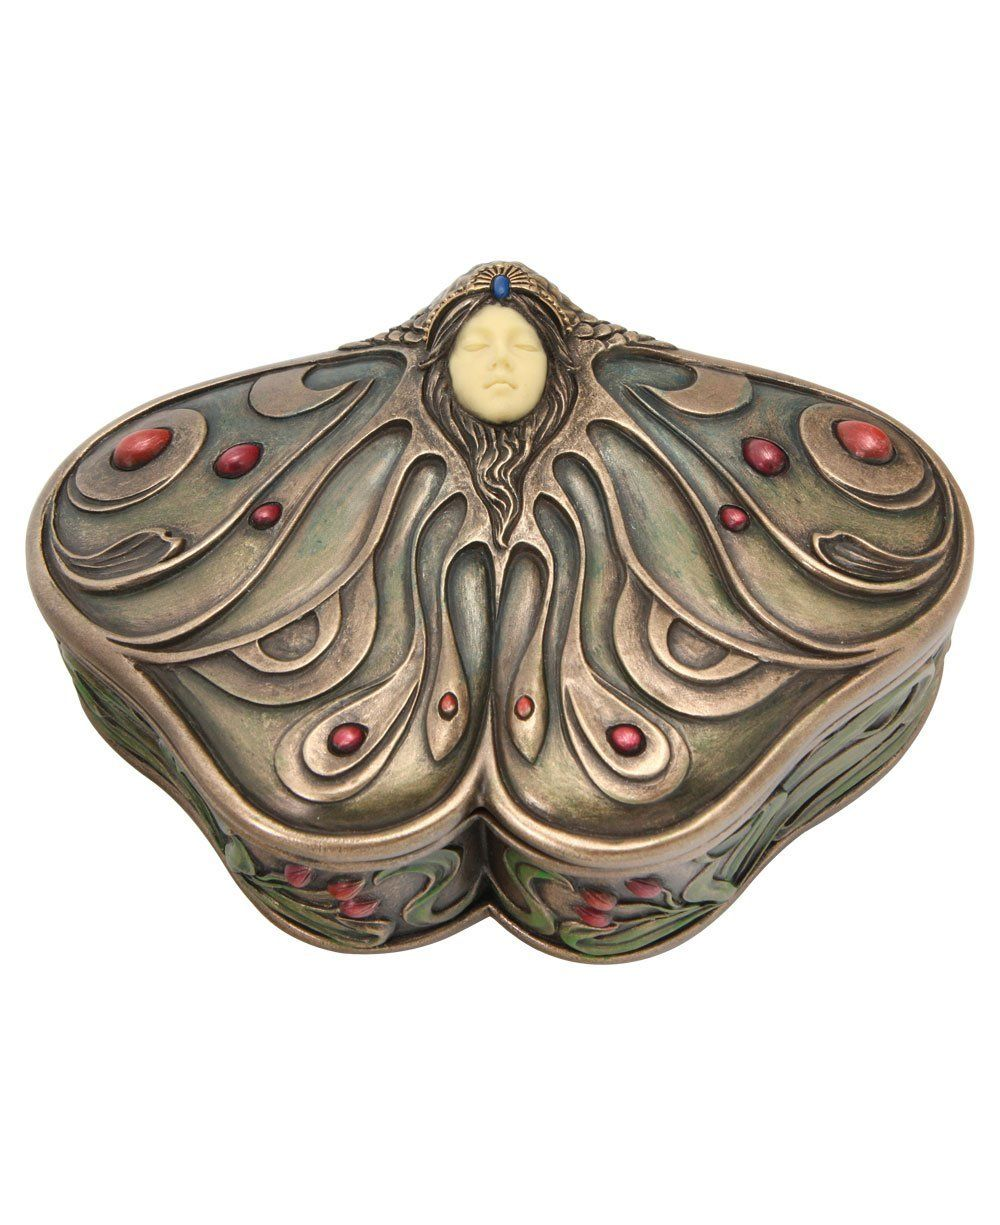 Art Nouveau Princess Jewelry Box Art Nouveau Pinterest